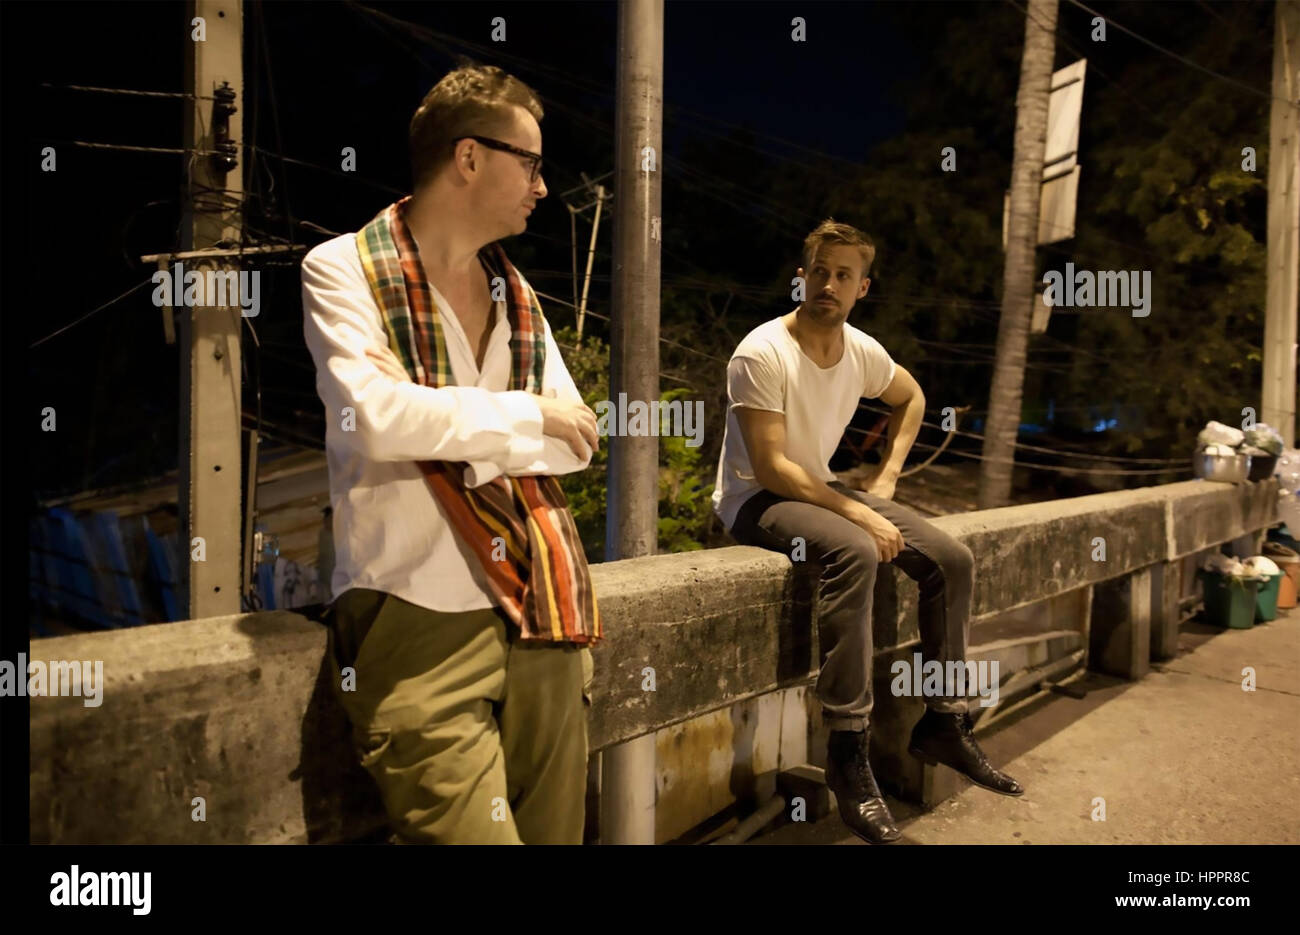 MY LIFE DIRECTED BY NICOLAS WINDING 2014 documentary by Liv Corfixen with  Nicolas Refn at left and Ryan Gosling - Stock Image